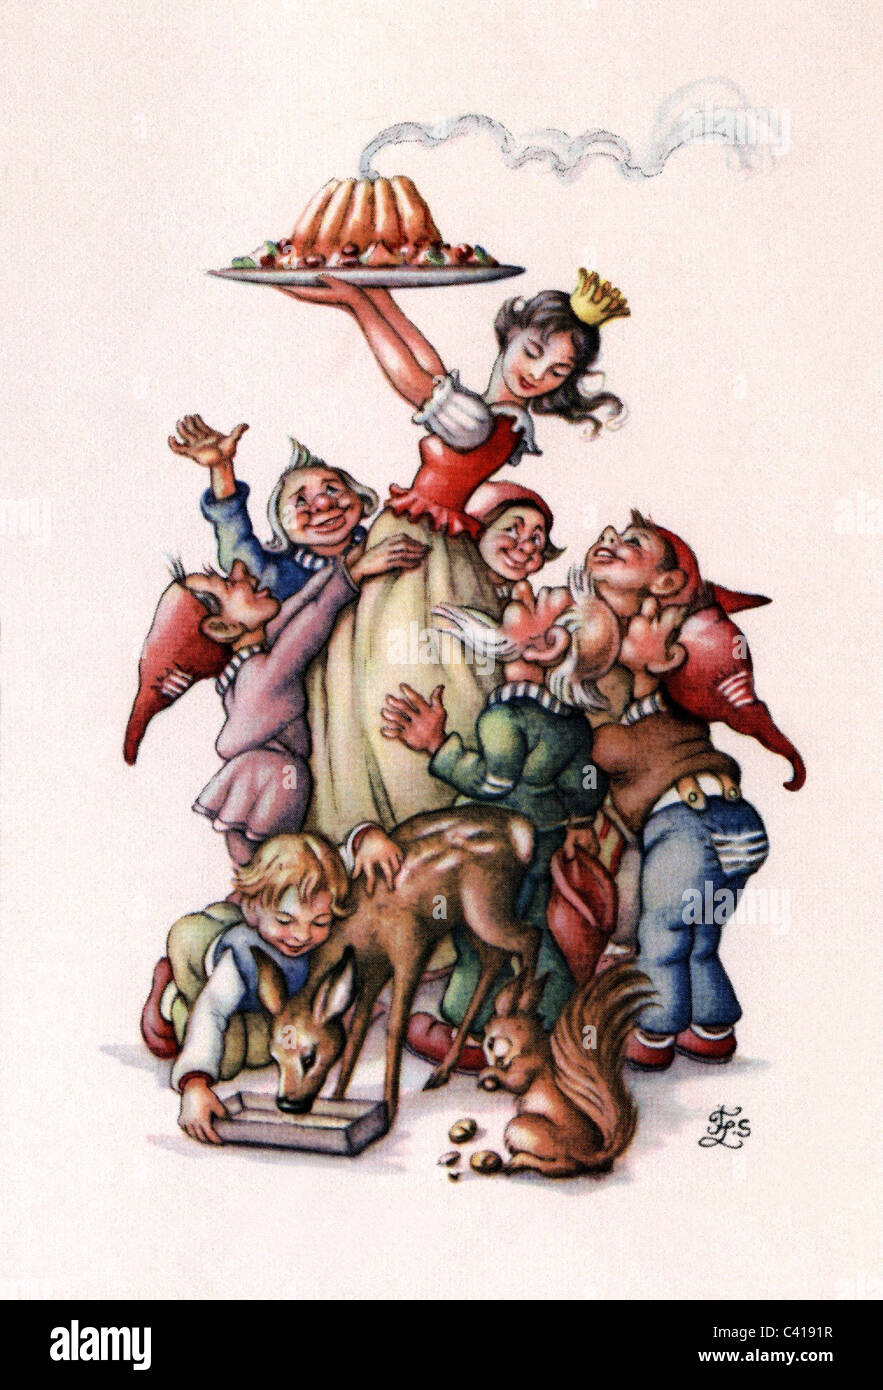 literature, fairy tale, Grimm's Fairy Tales, 'Snow White and the seven dwarfs', coloured illustration, - Stock Image